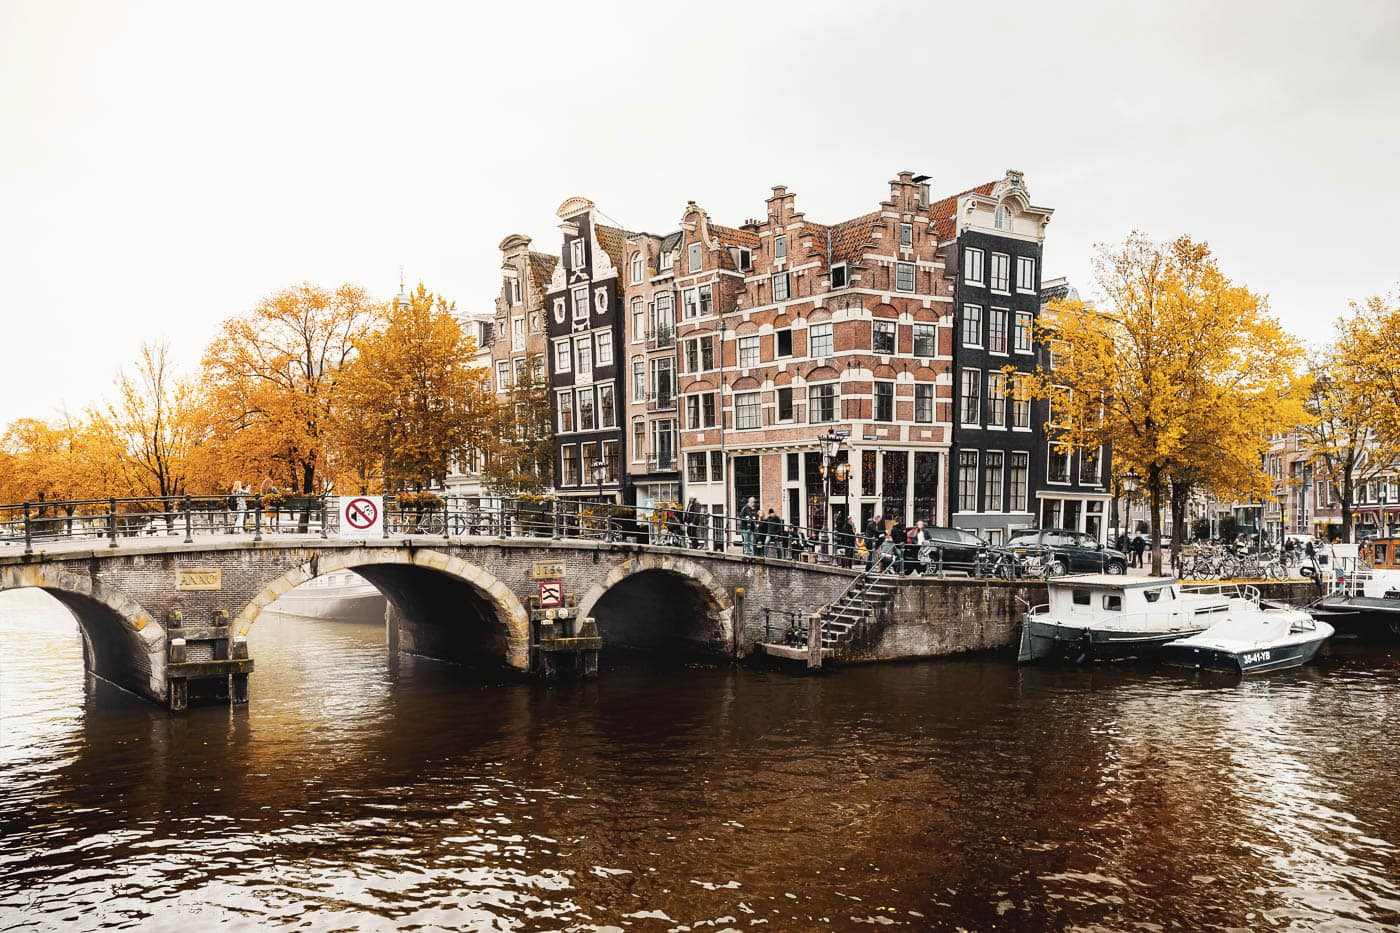 Amsterdam Classic: Famous Jordaan district